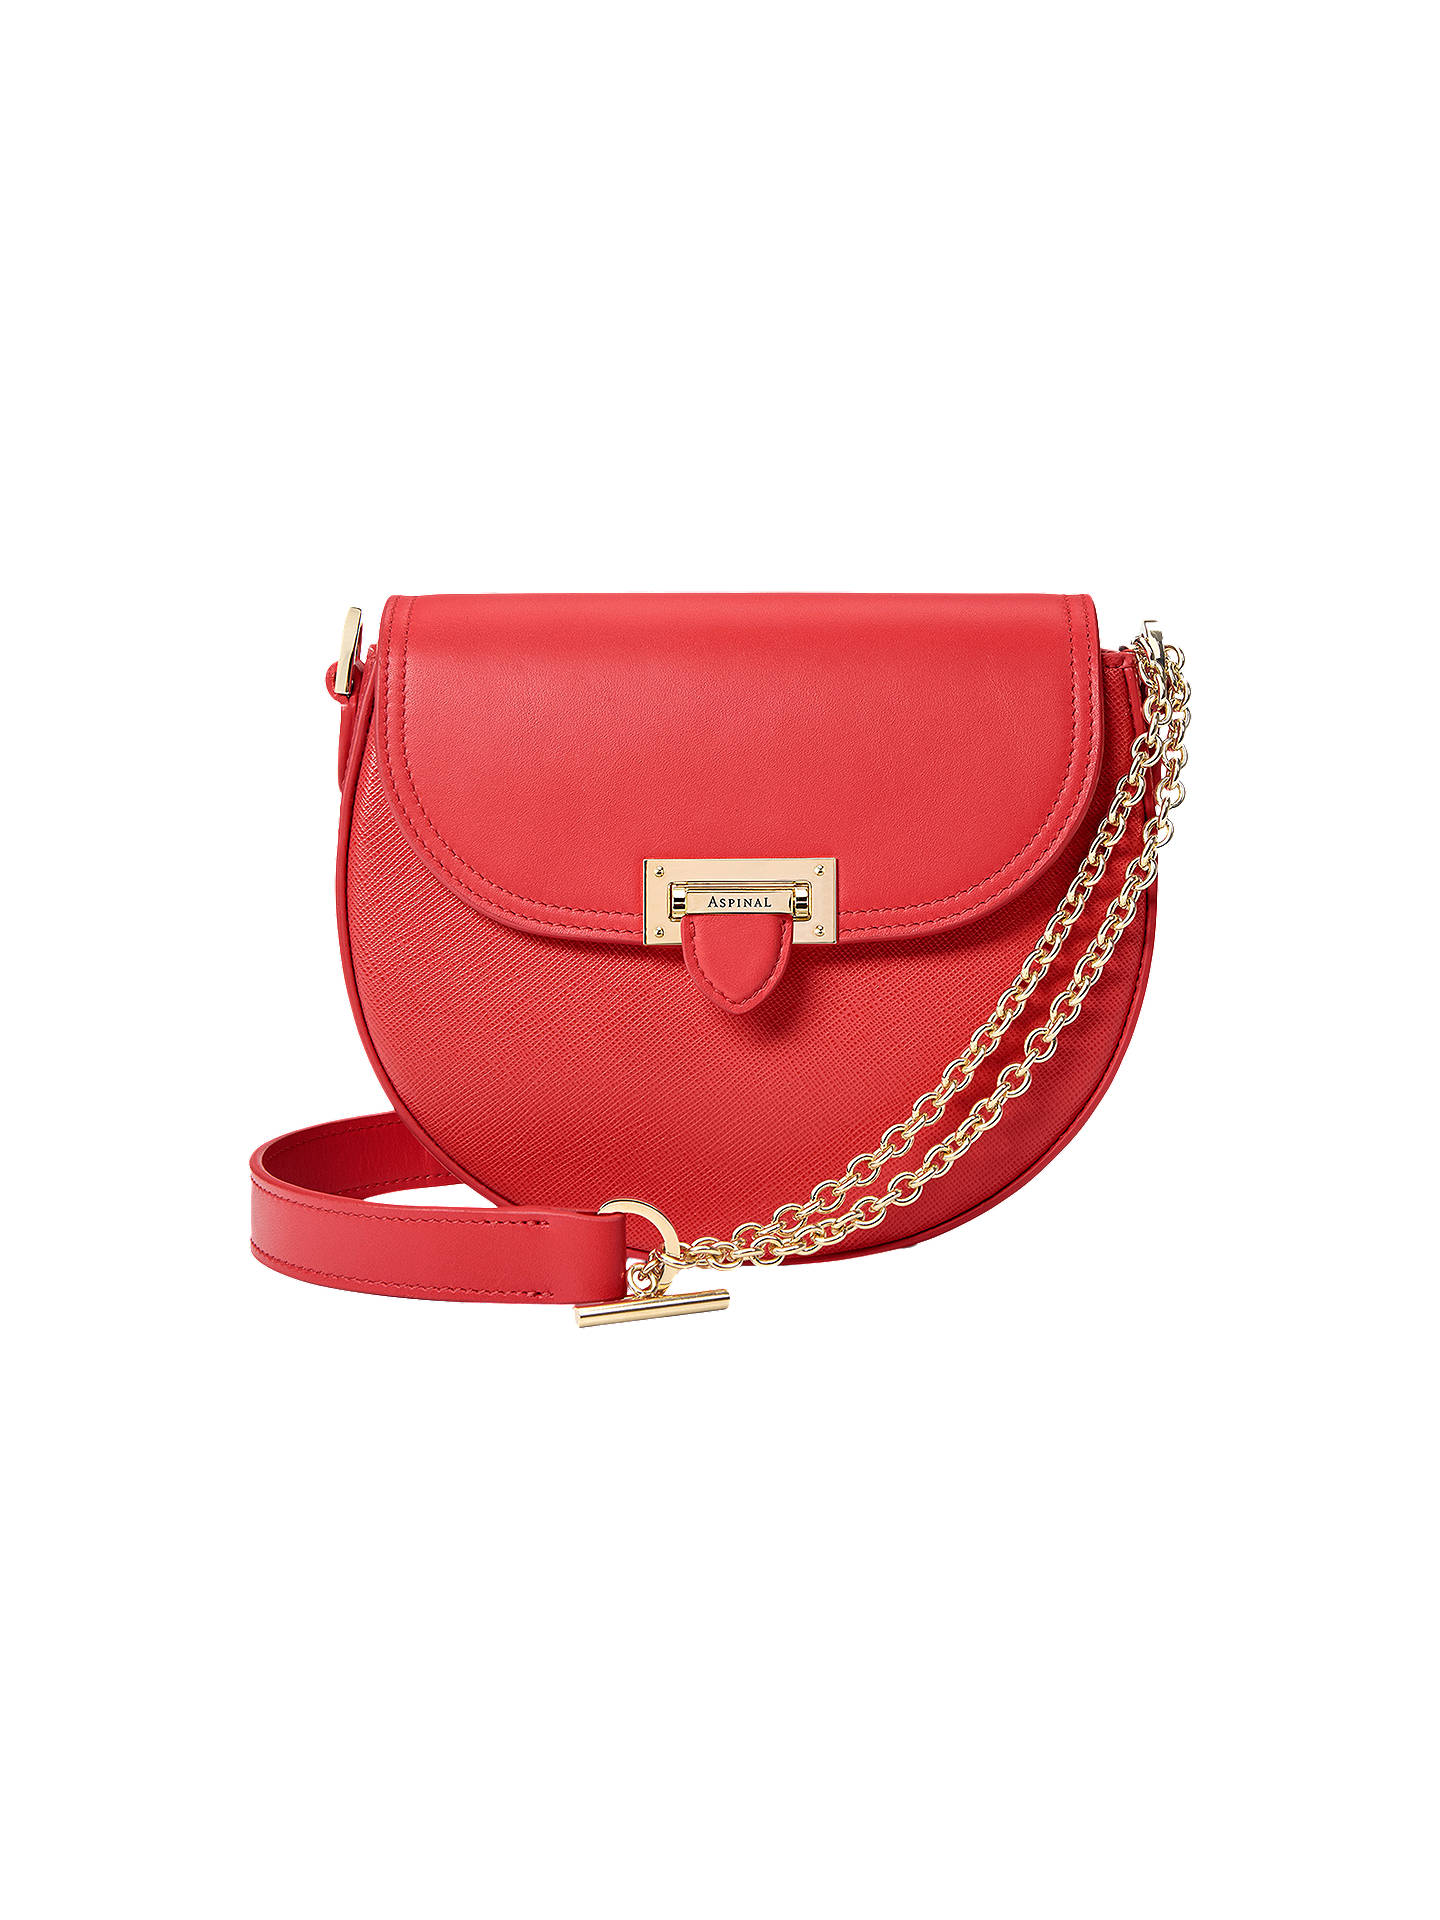 Aspinal Of London Portobello Leather Letterbox Saddle Bag Dahlia Online At Johnlewis